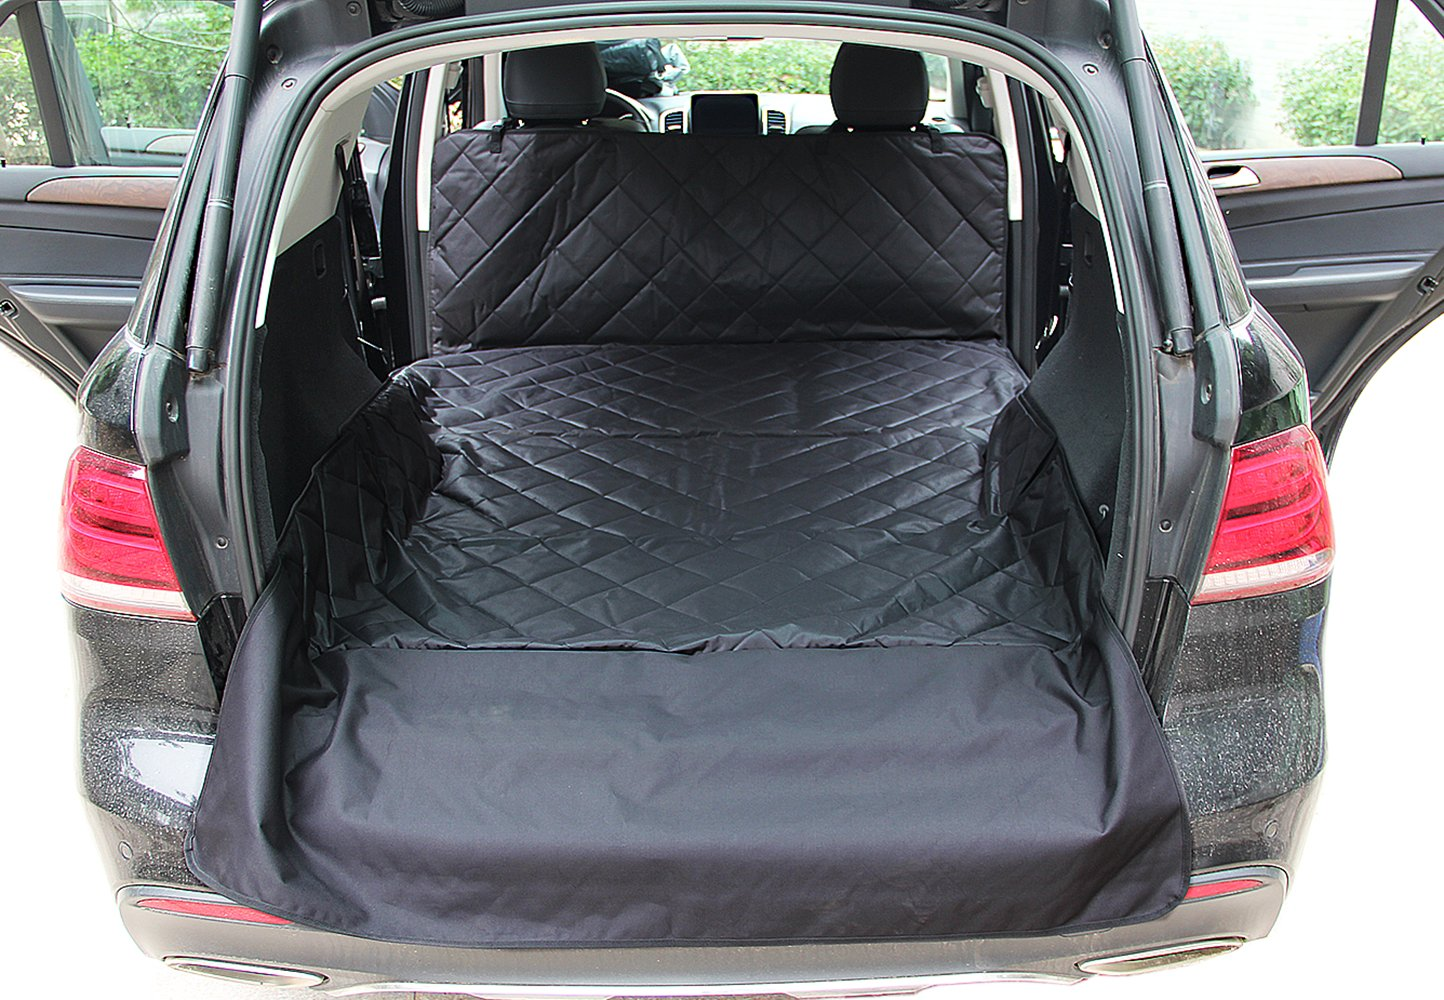 INNX SUV Cargo Liner for Pets, Quilted Dog Cargo Cover for SUV, Minivans, Jeeps, Pick up, Waterproof (Black, 106'' Lx55 W)